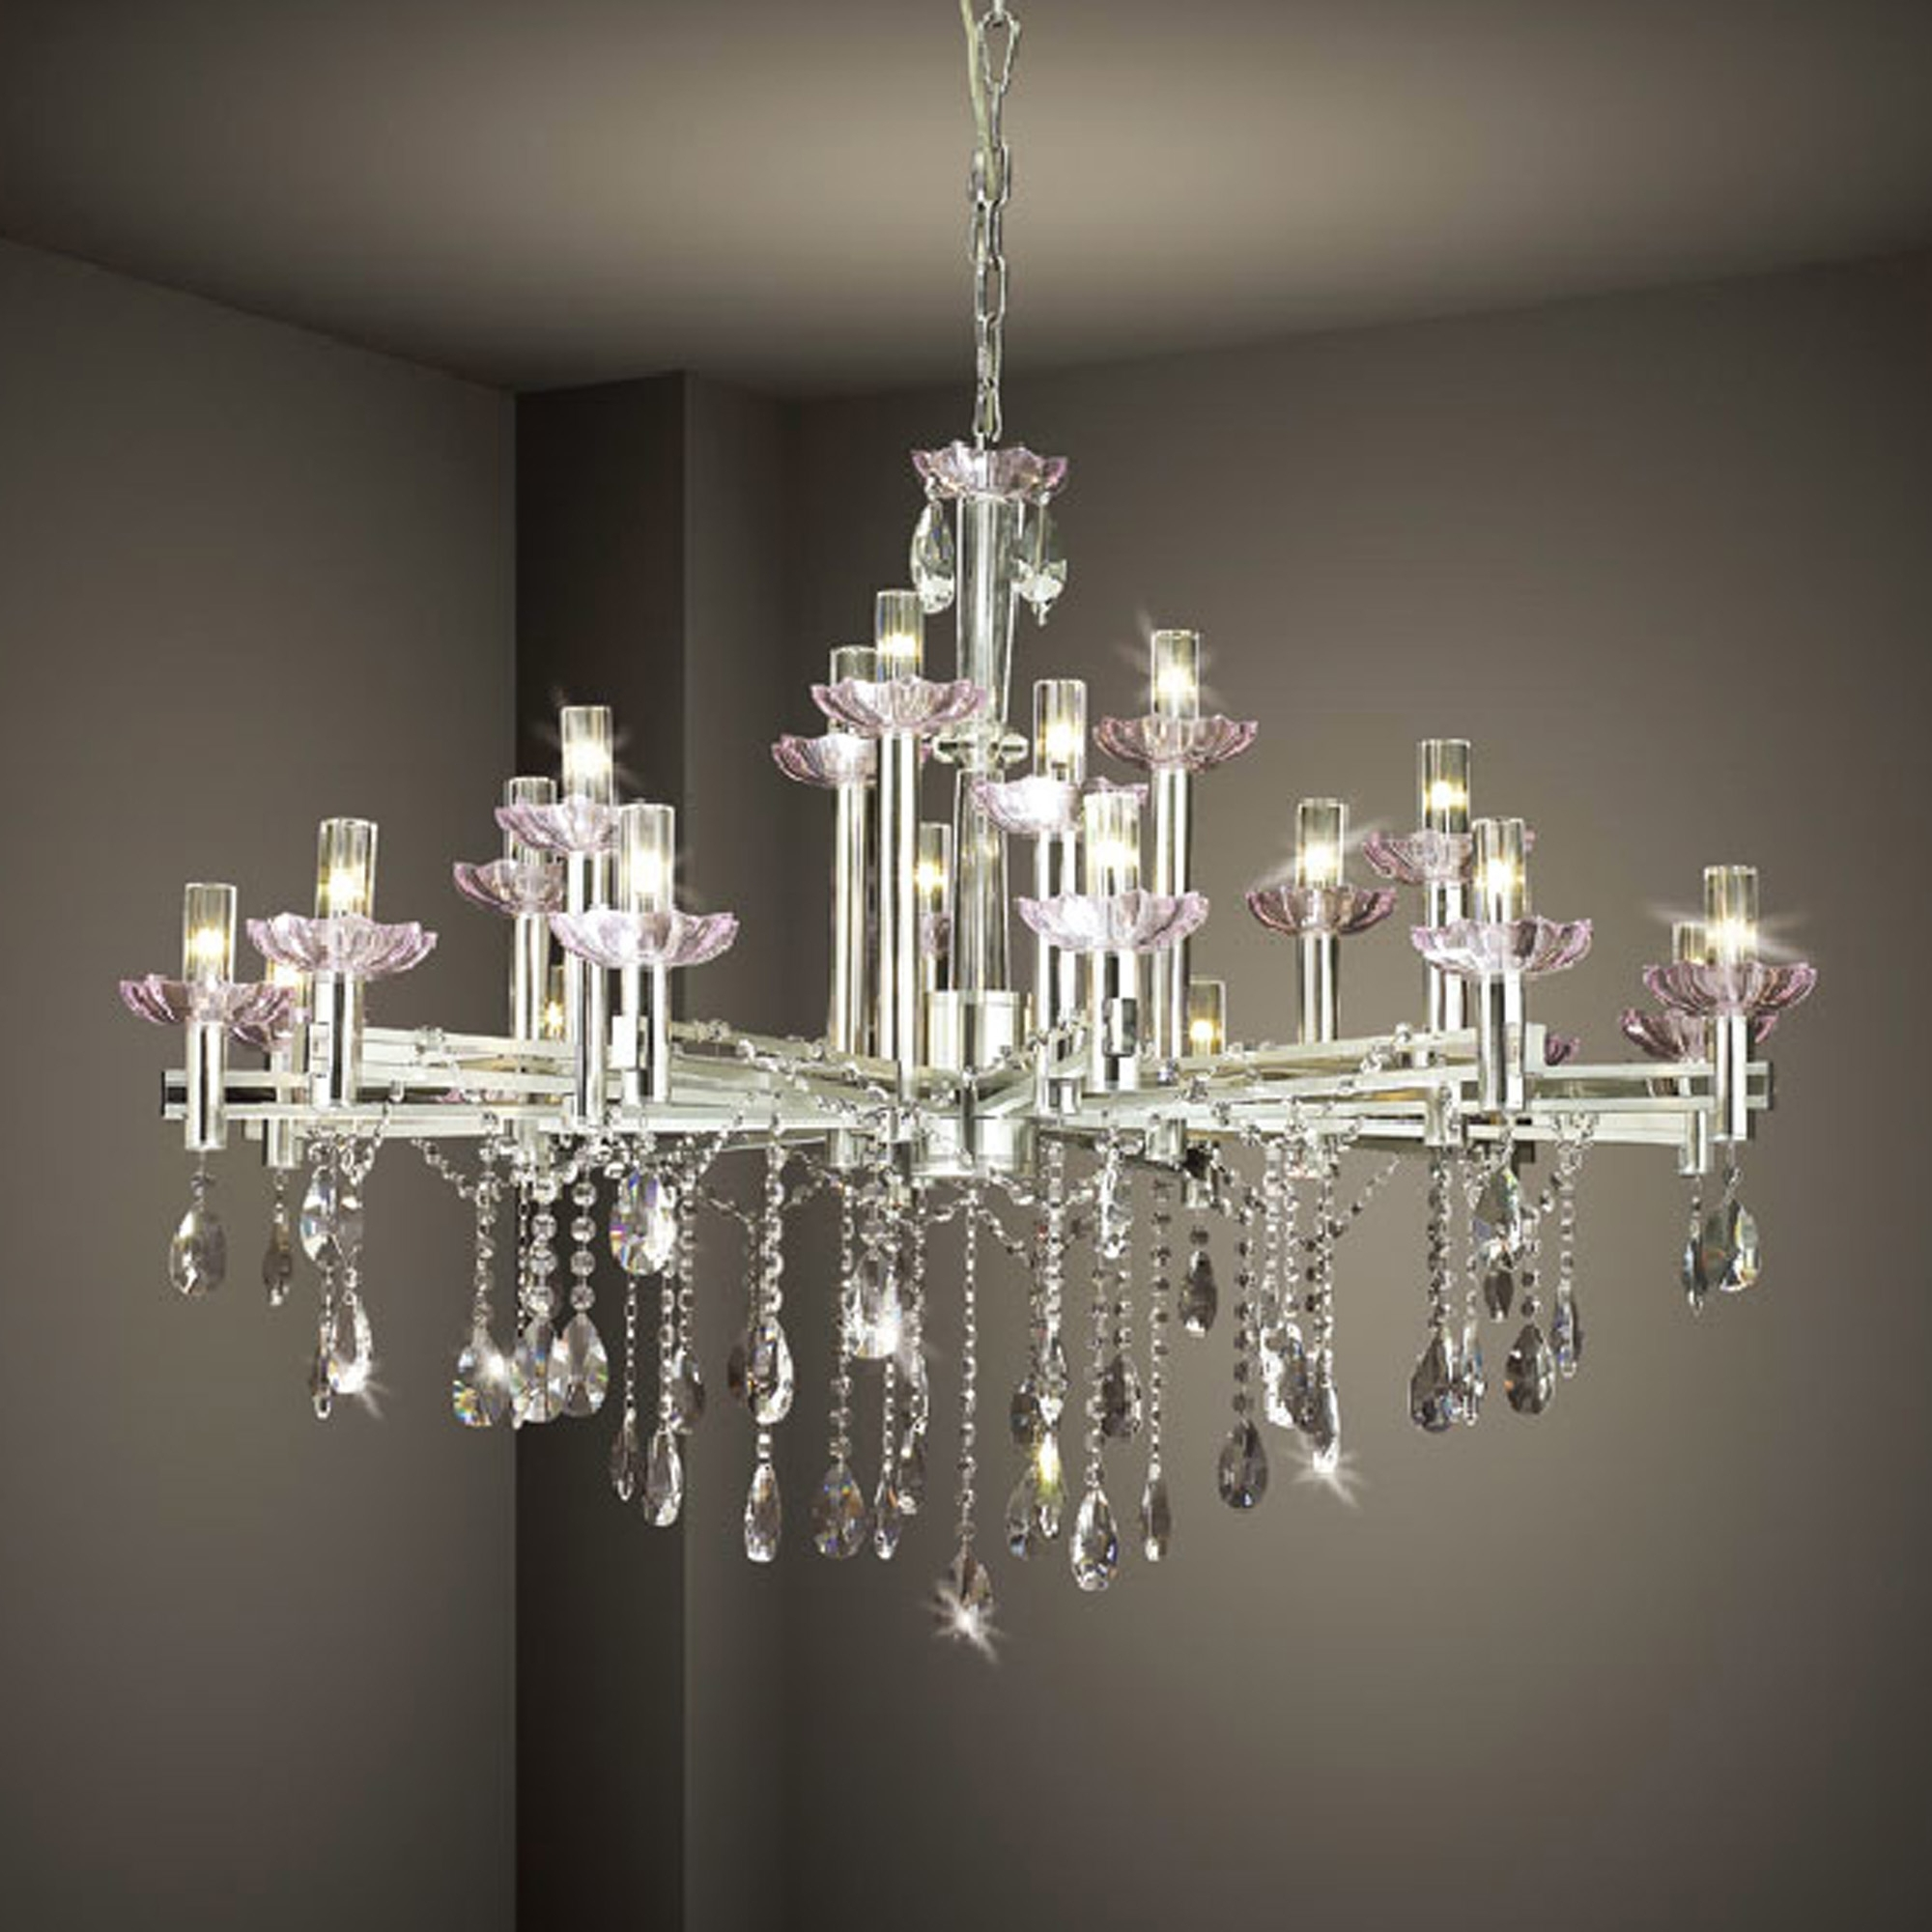 Widely Used White And Crystal Chandeliers In Hanging Modern Crystal Chandelier Lighting With Stainless Steel (View 15 of 15)